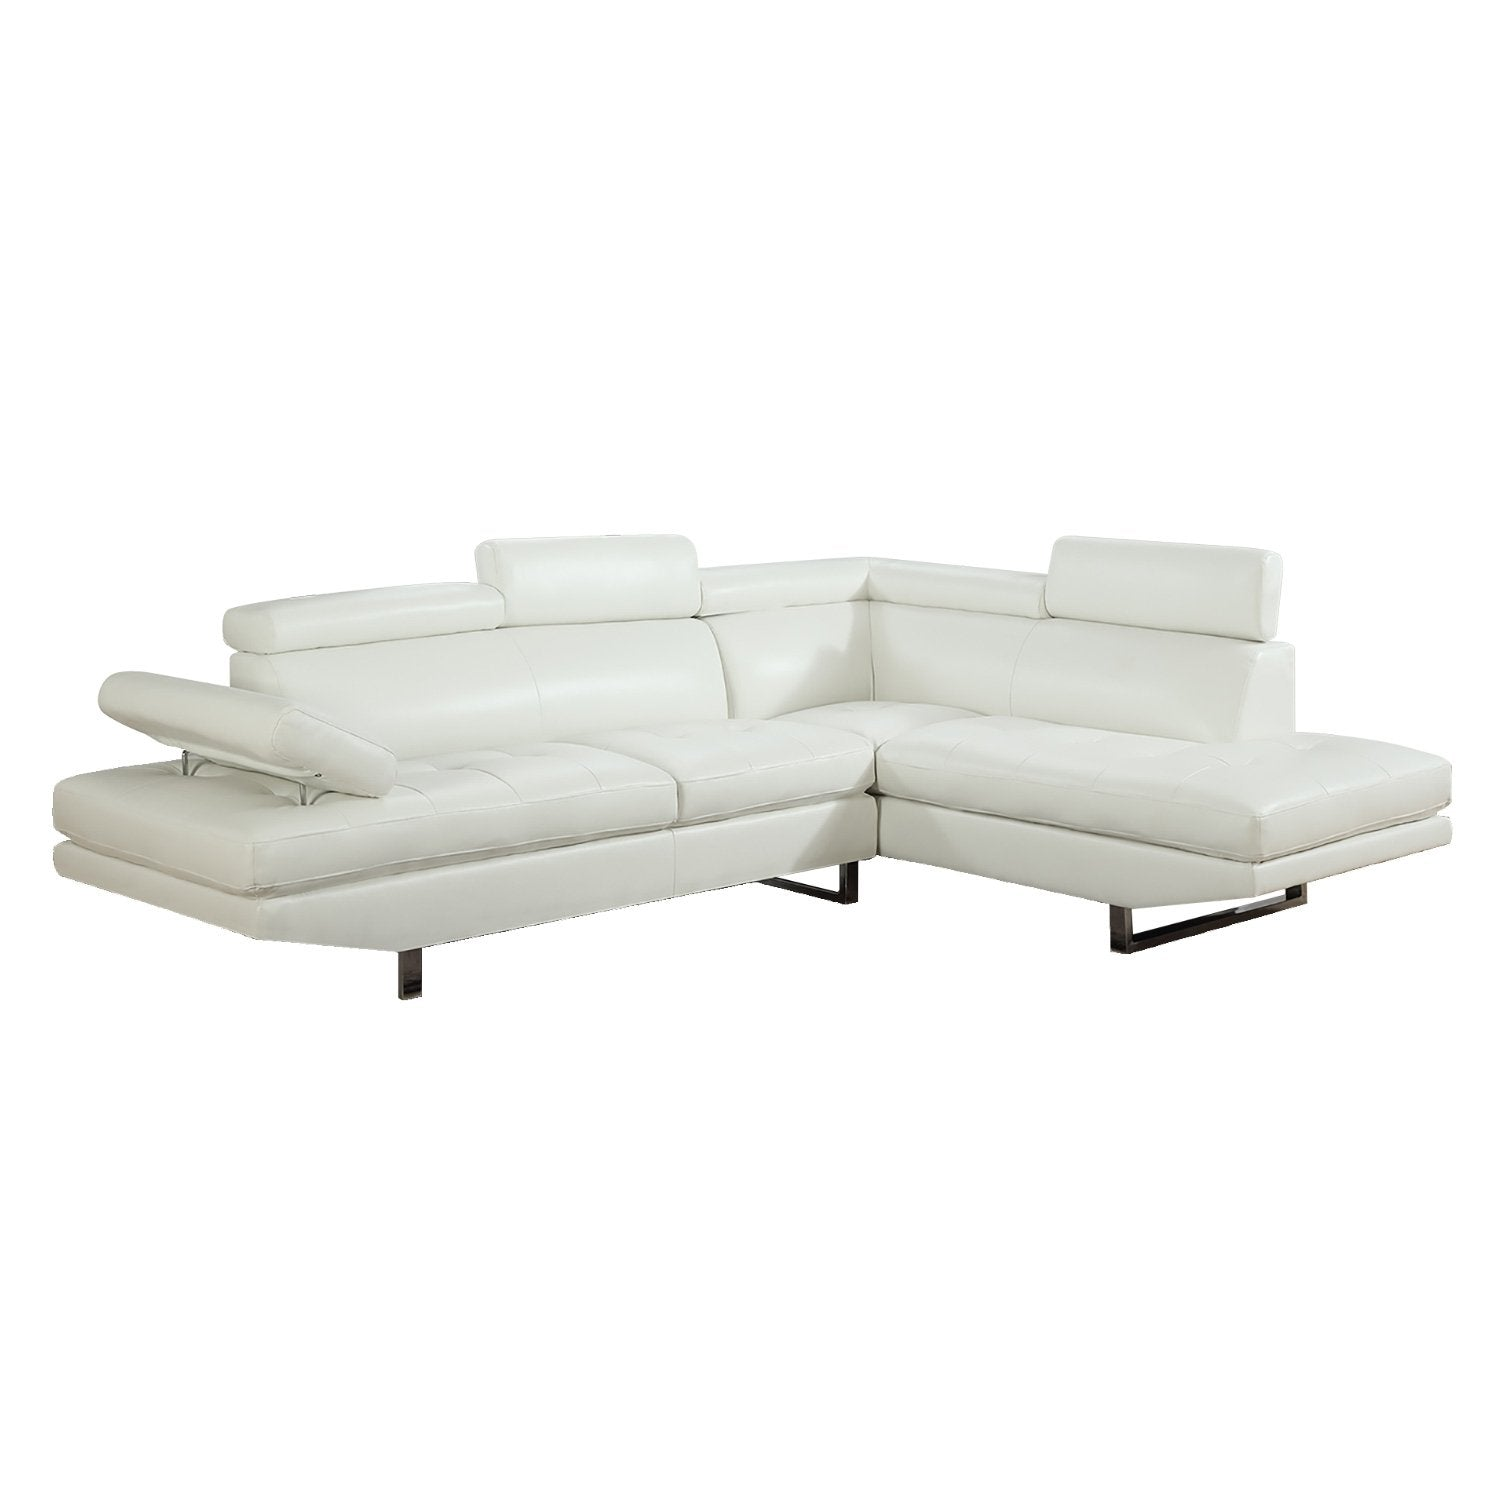 Wyatt 2-Piece Sectional